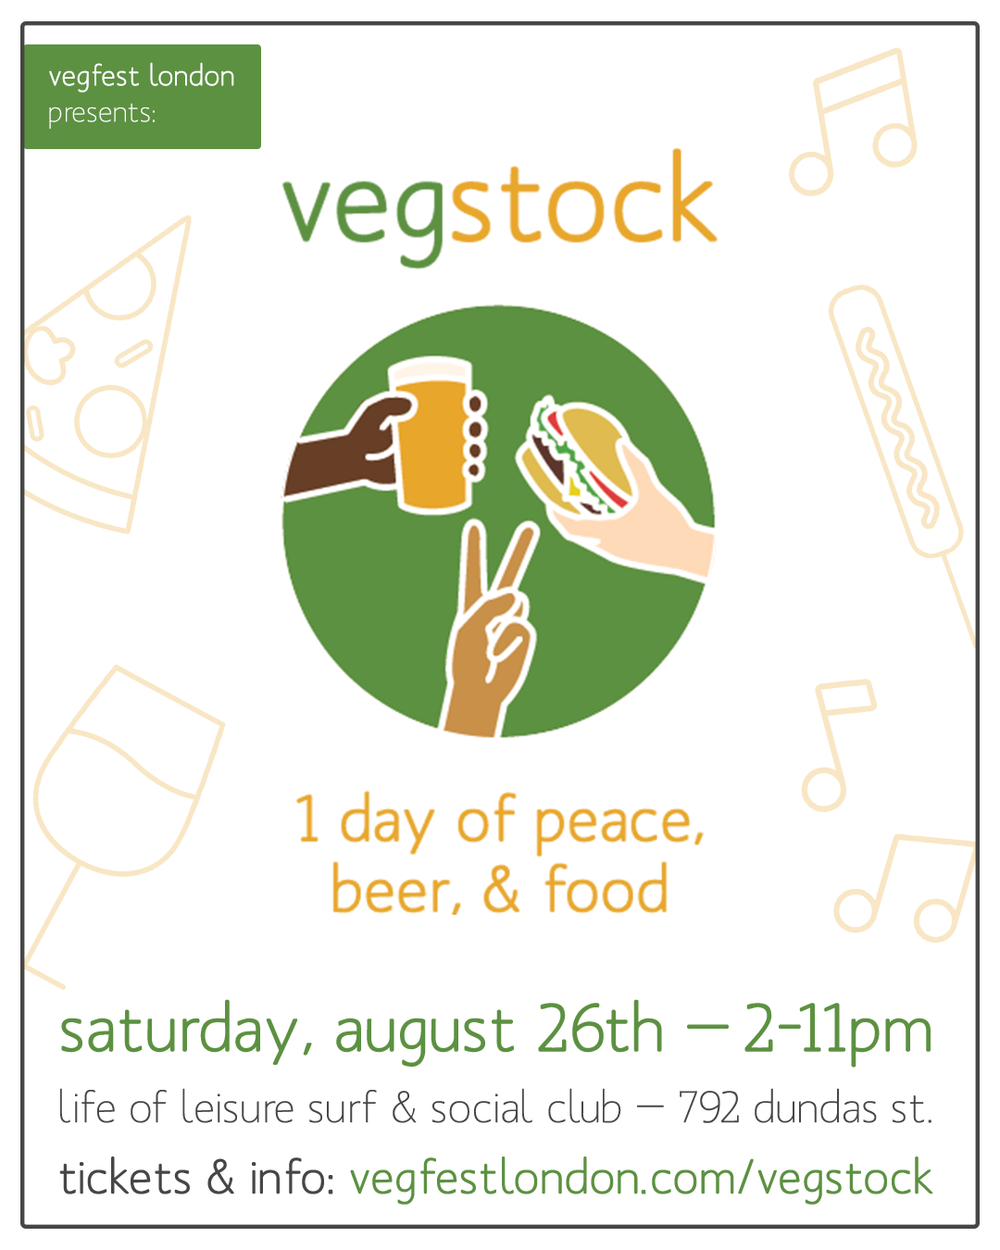 VegstockSaveTheDate_InstaTall_OFFICIAL.png